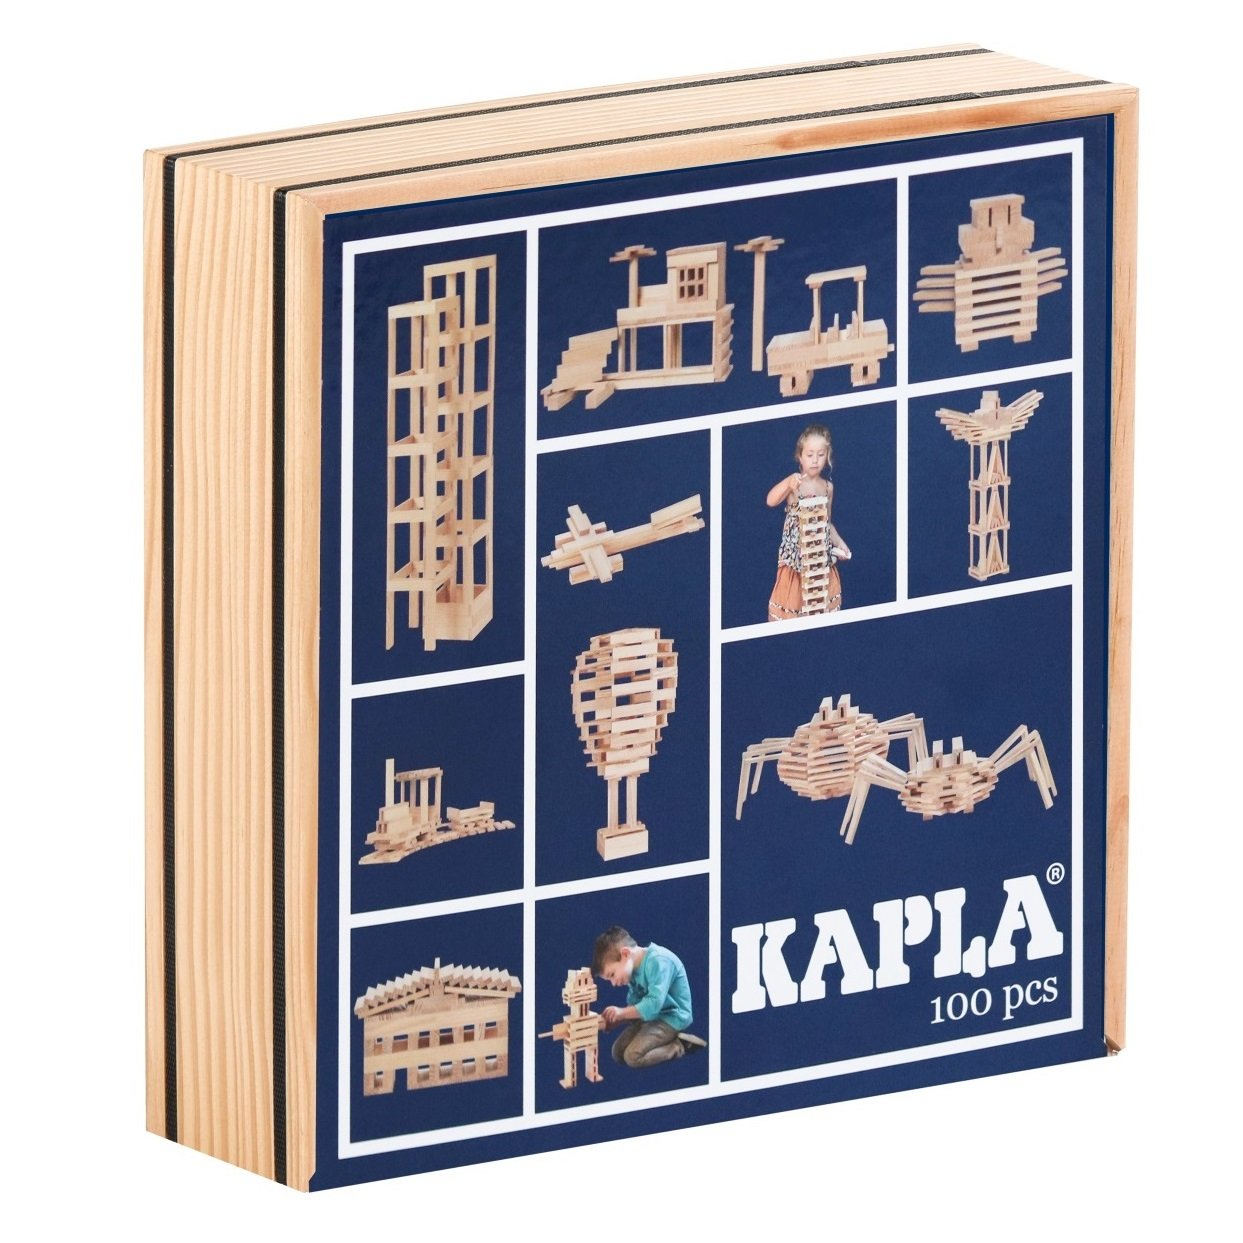 Kapla Wooden Toy Game